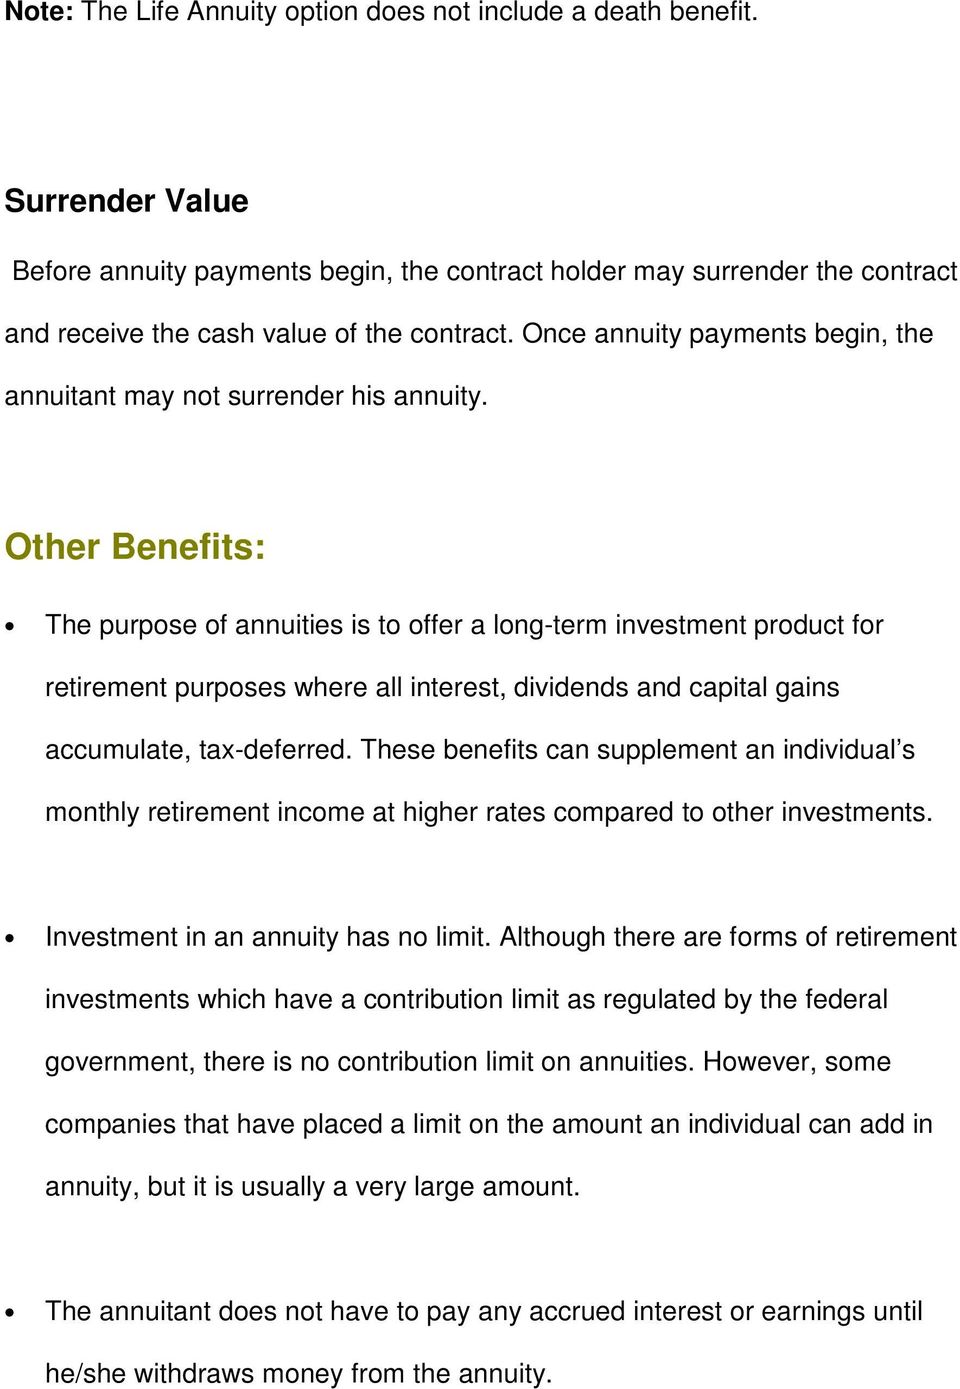 Once annuity payments begin, the annuitant may not surrender his annuity.